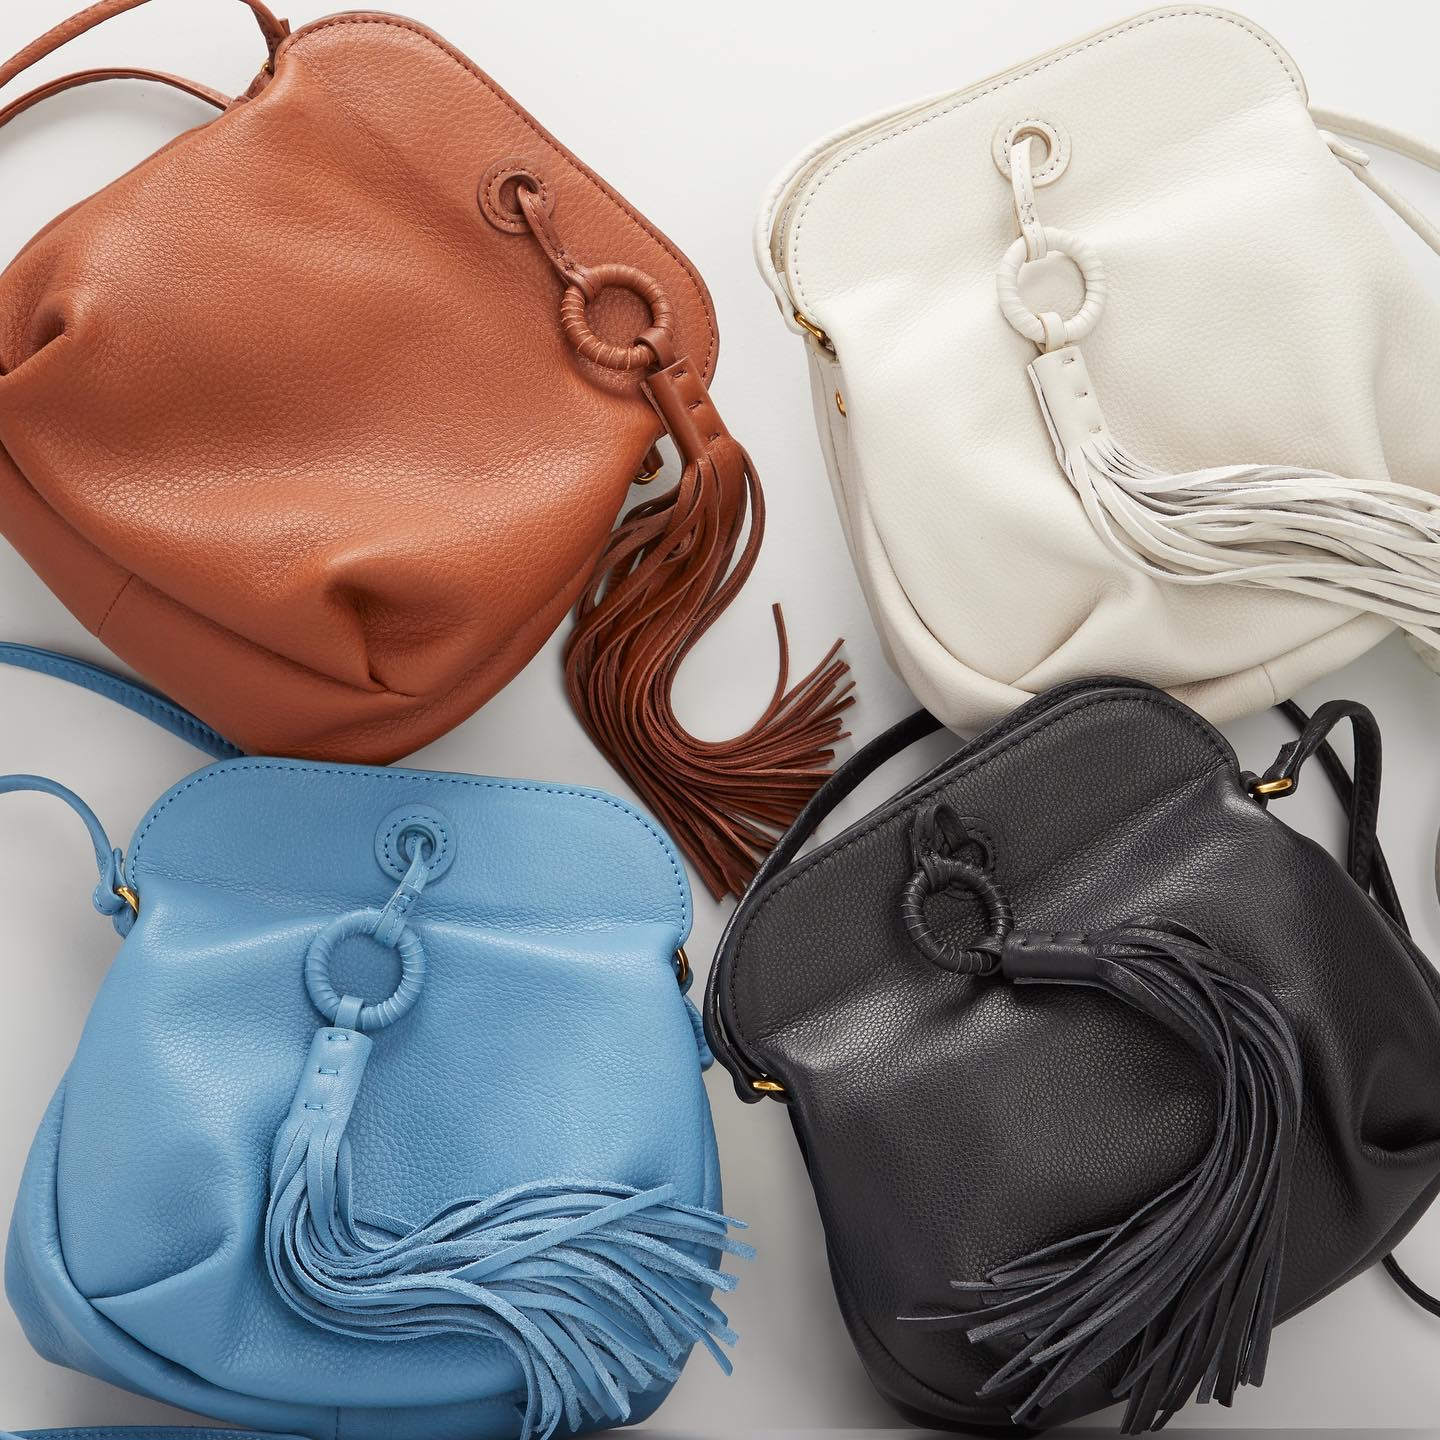 Leather Hobo Bags Review